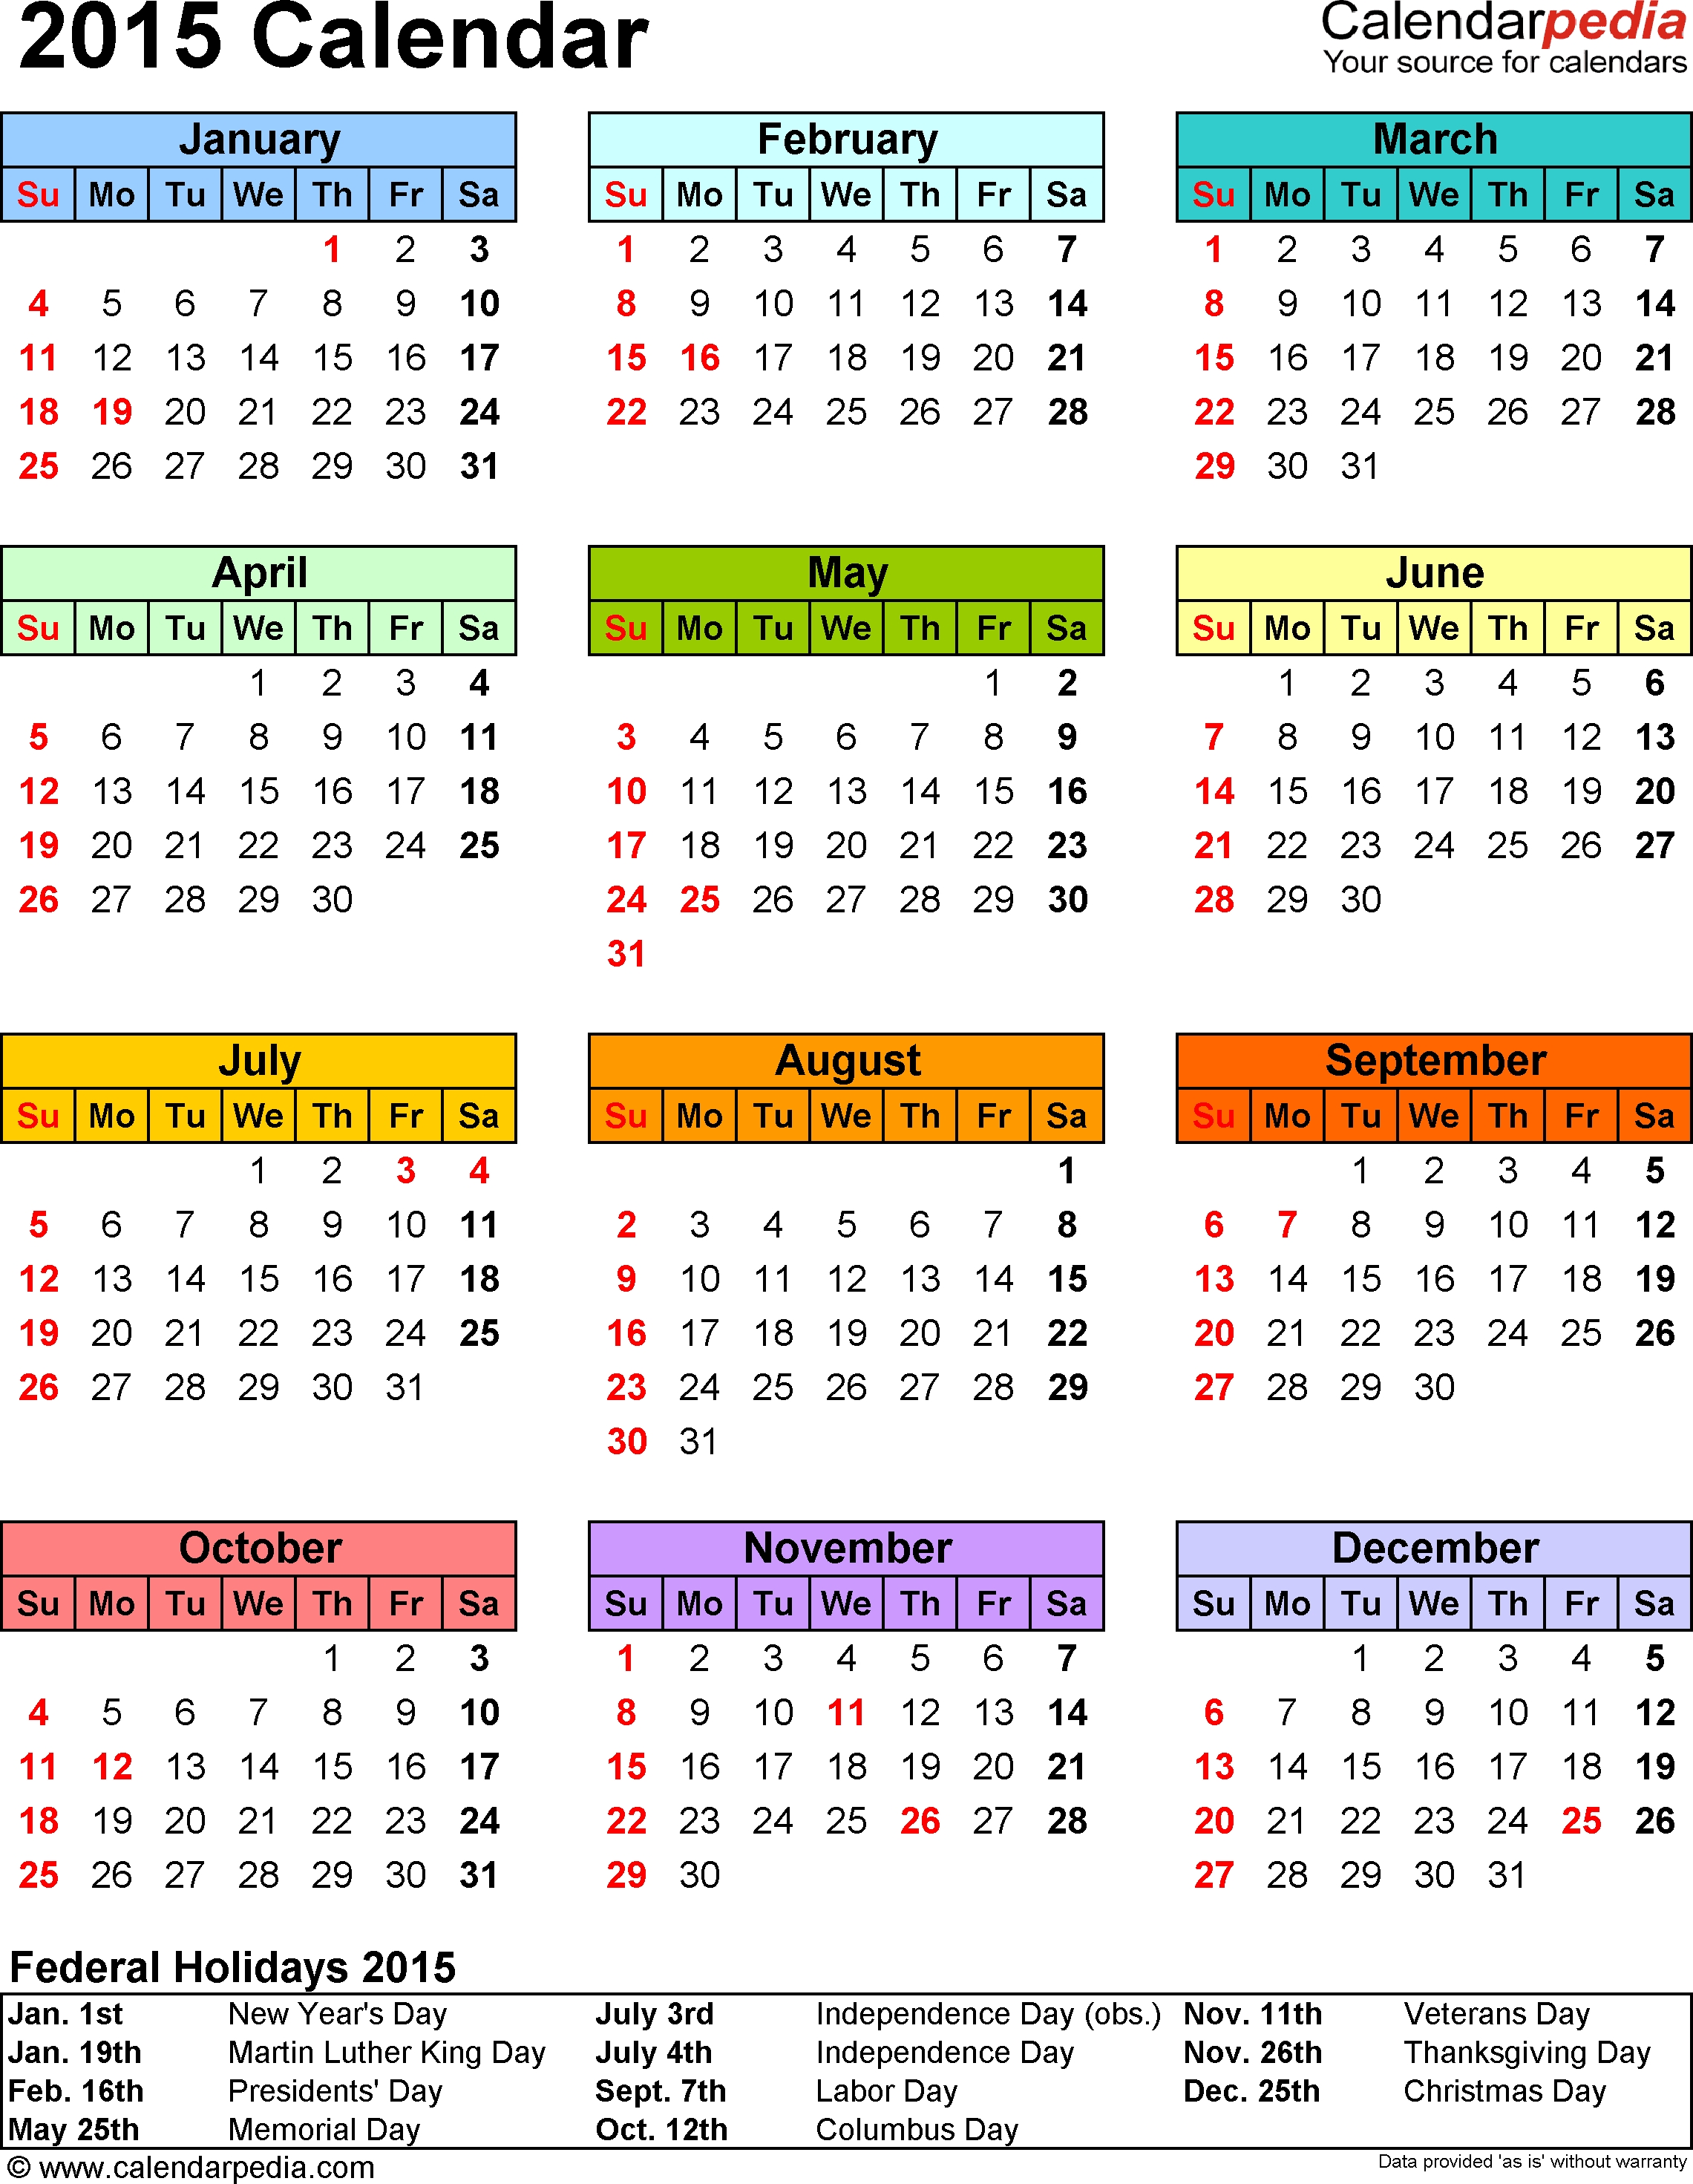 2015 Calendar Printable One Page With Holidays - Yeniscale.co  Printable 2014 Calendar With Canadian Holidays